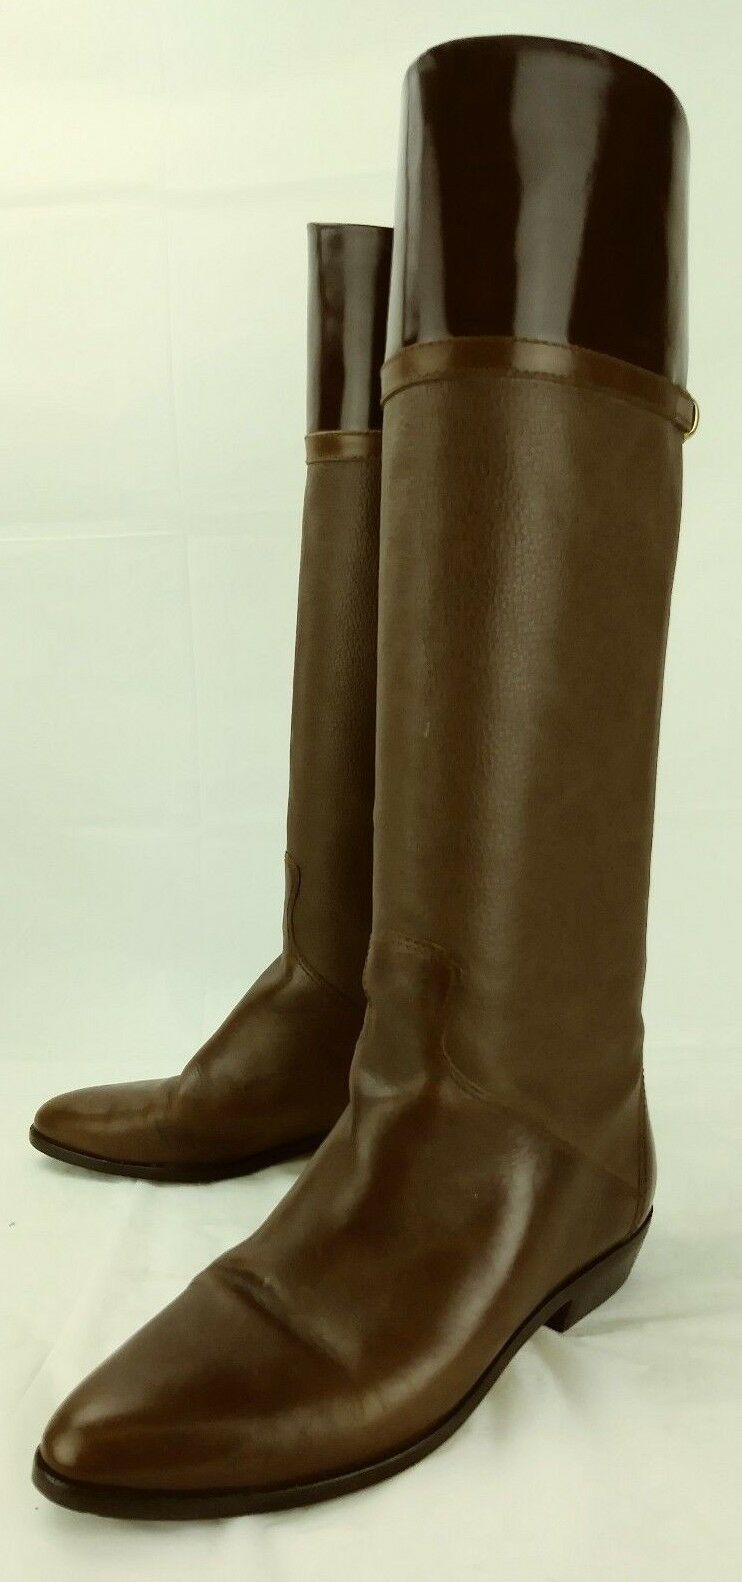 Etienne Aigner Wos Boots SAMPLE 7954 US 6 B Brown Leather Pull on Riding 2331